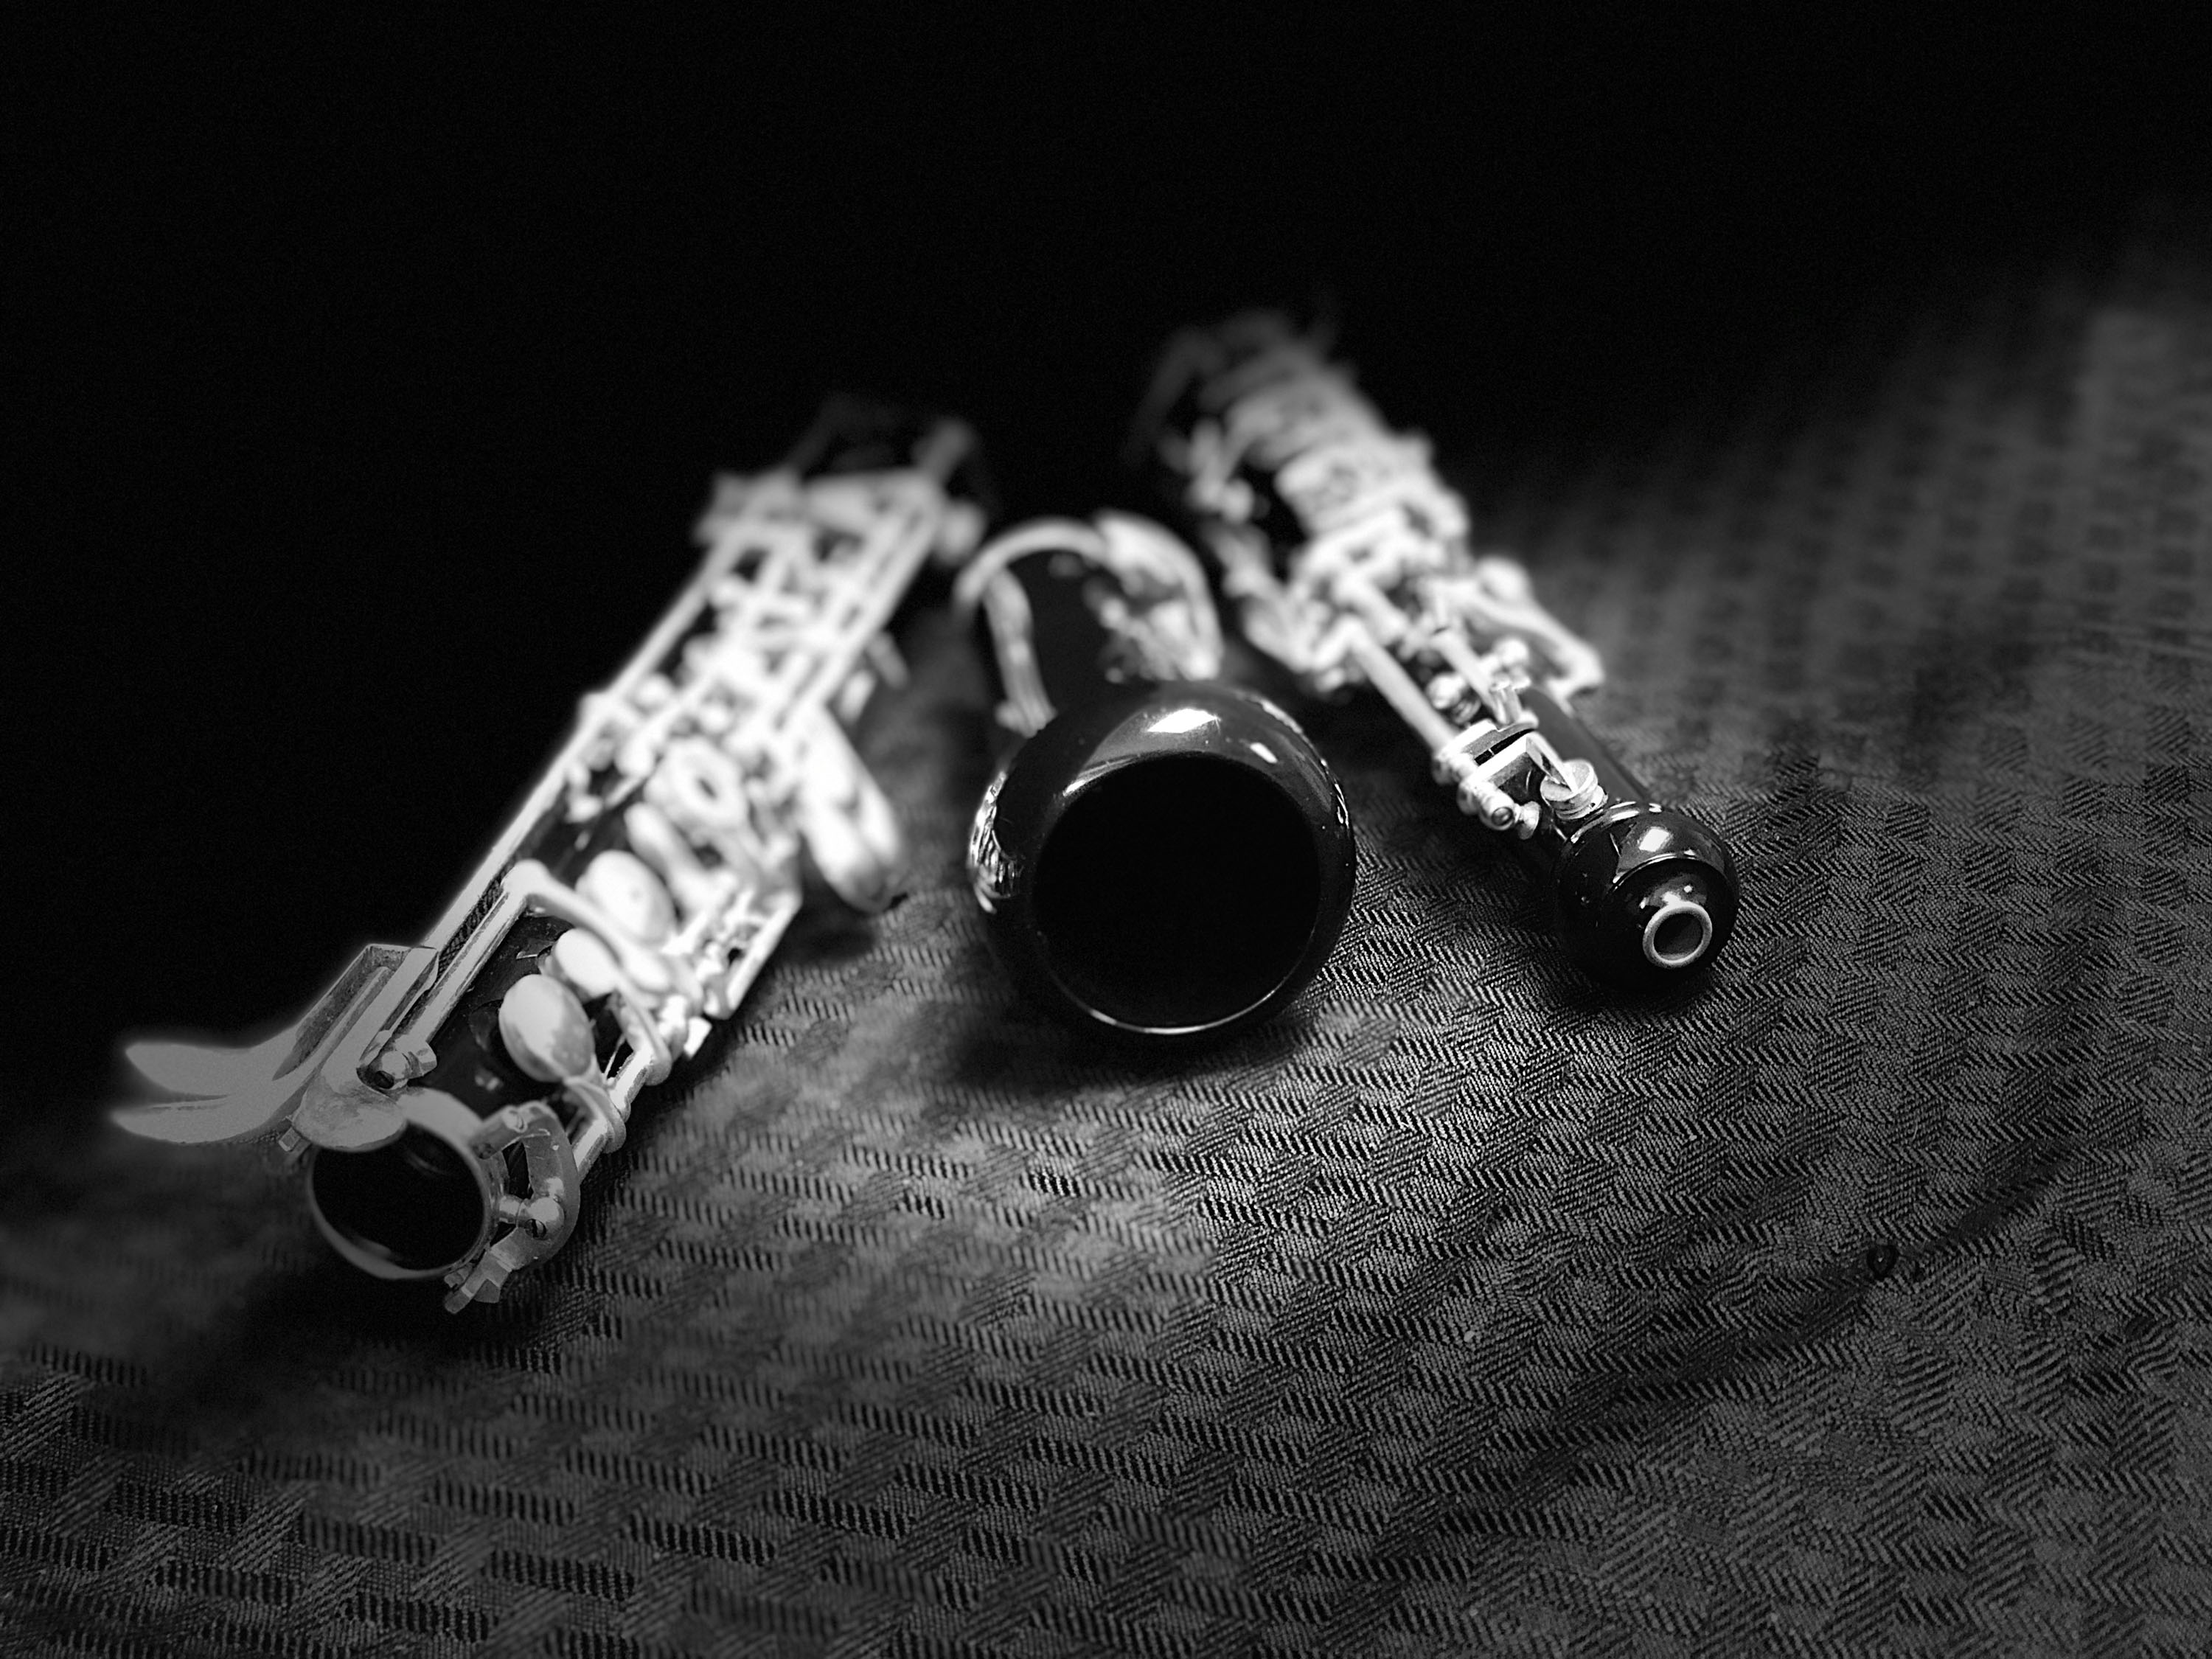 Close-up view of disassembled clarinet